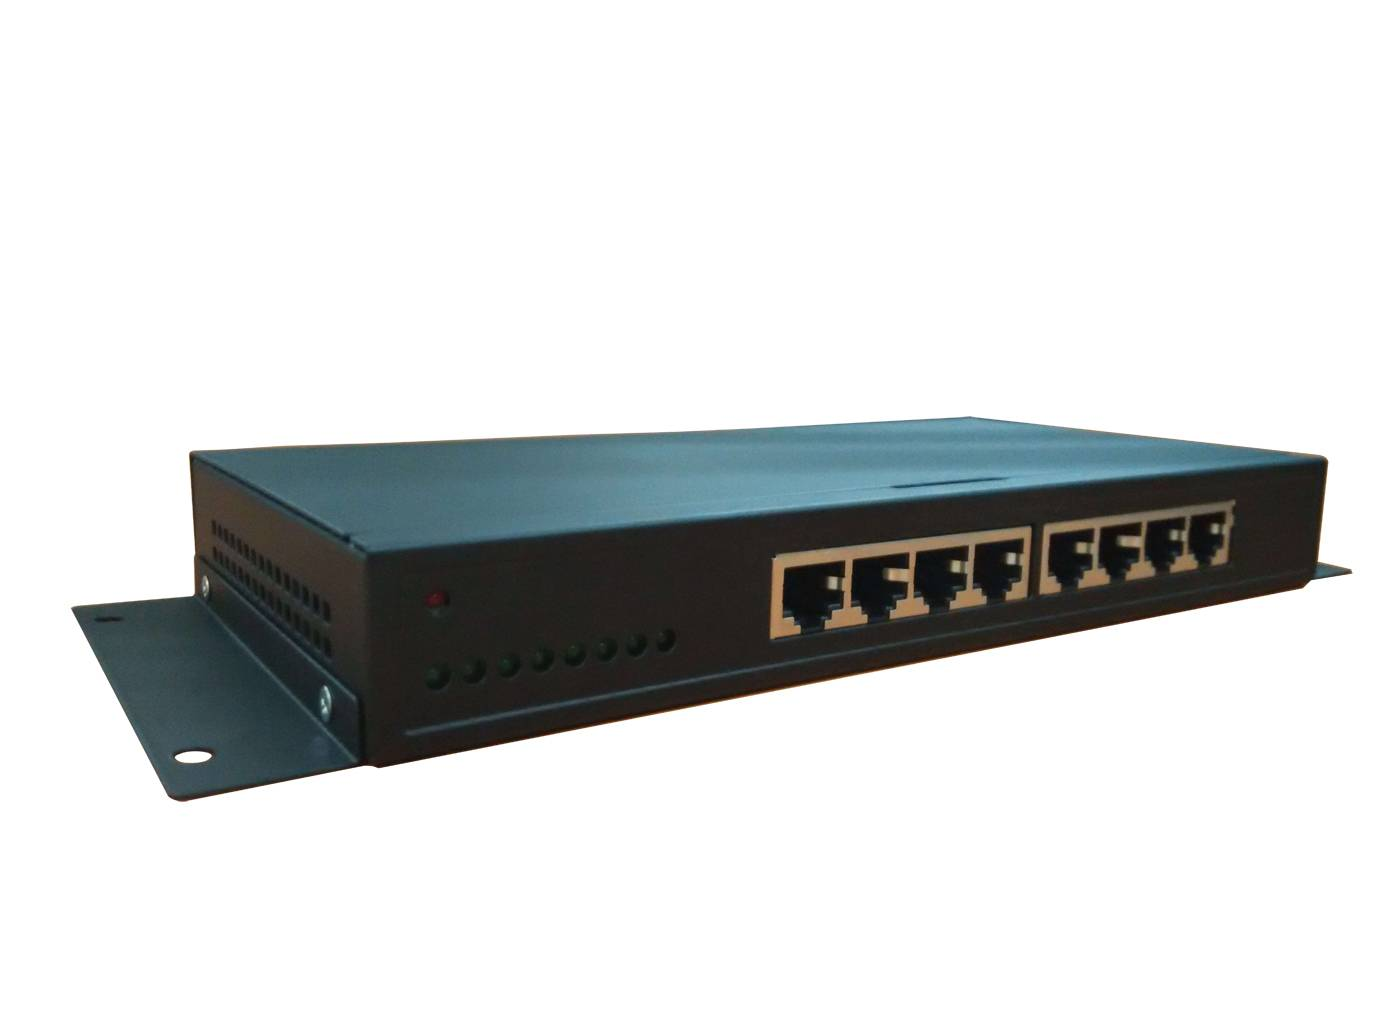 8 ports 19 rack-mountable 10/100M Ethernet Switch with EEE Green Power technology